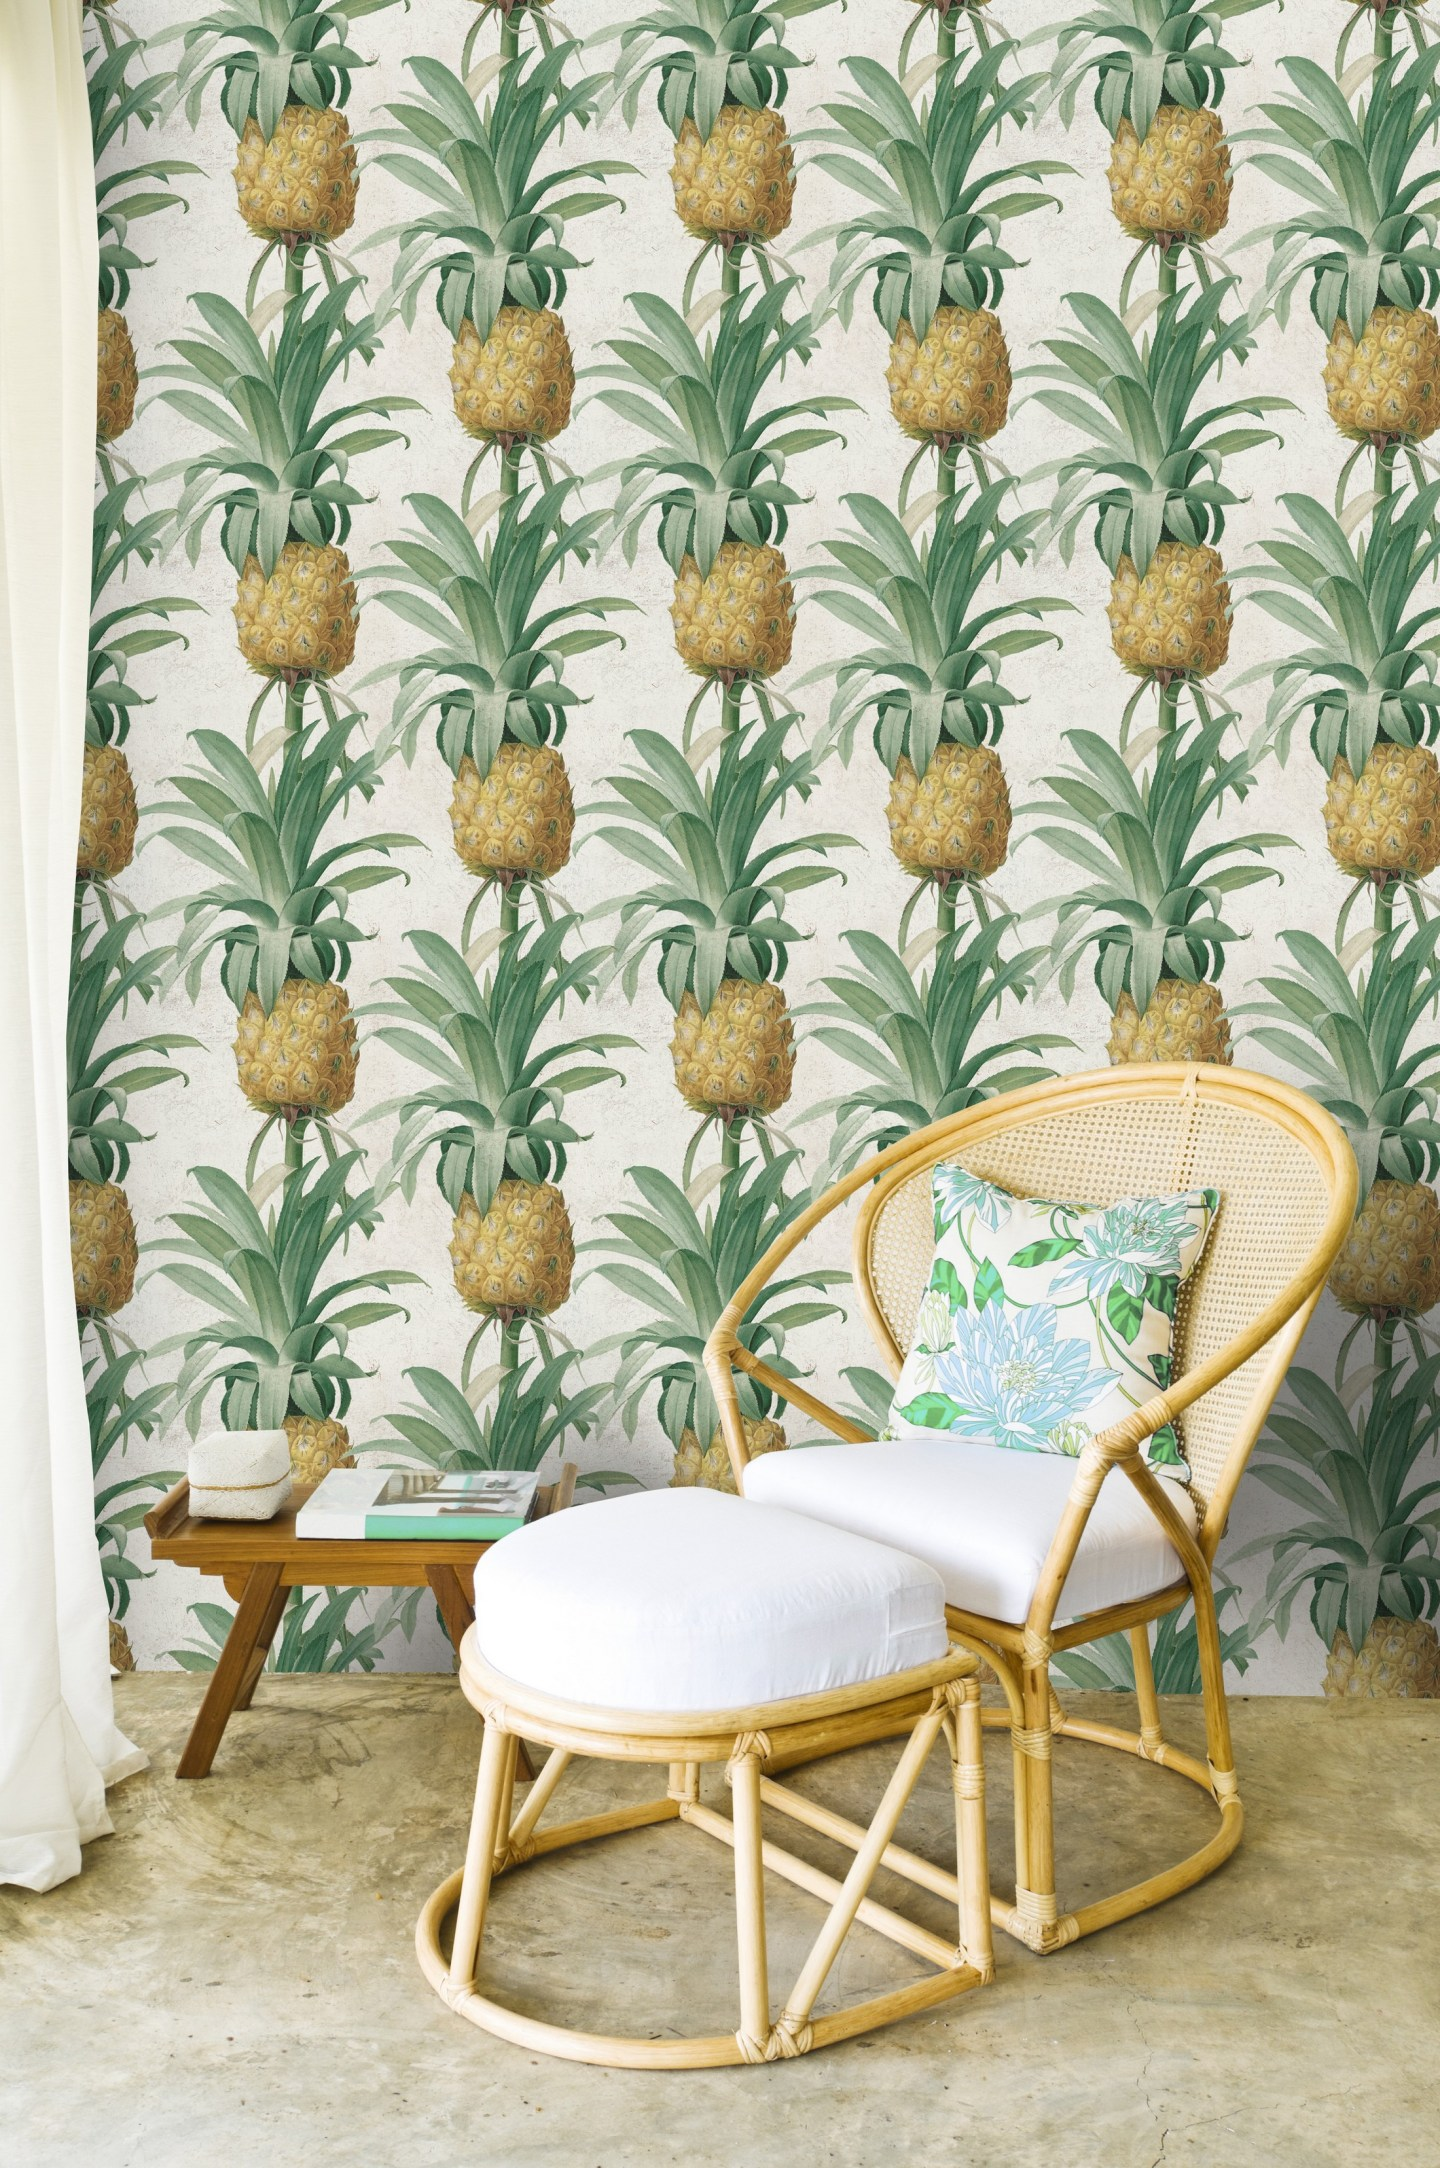 Lime-Lace-Pineapple-Wallpaper-by-MINDTHEGAP-1642174-1-1440x2168 Pineapple Decor: Tips for Decorating Your Home with Southern Hospitality